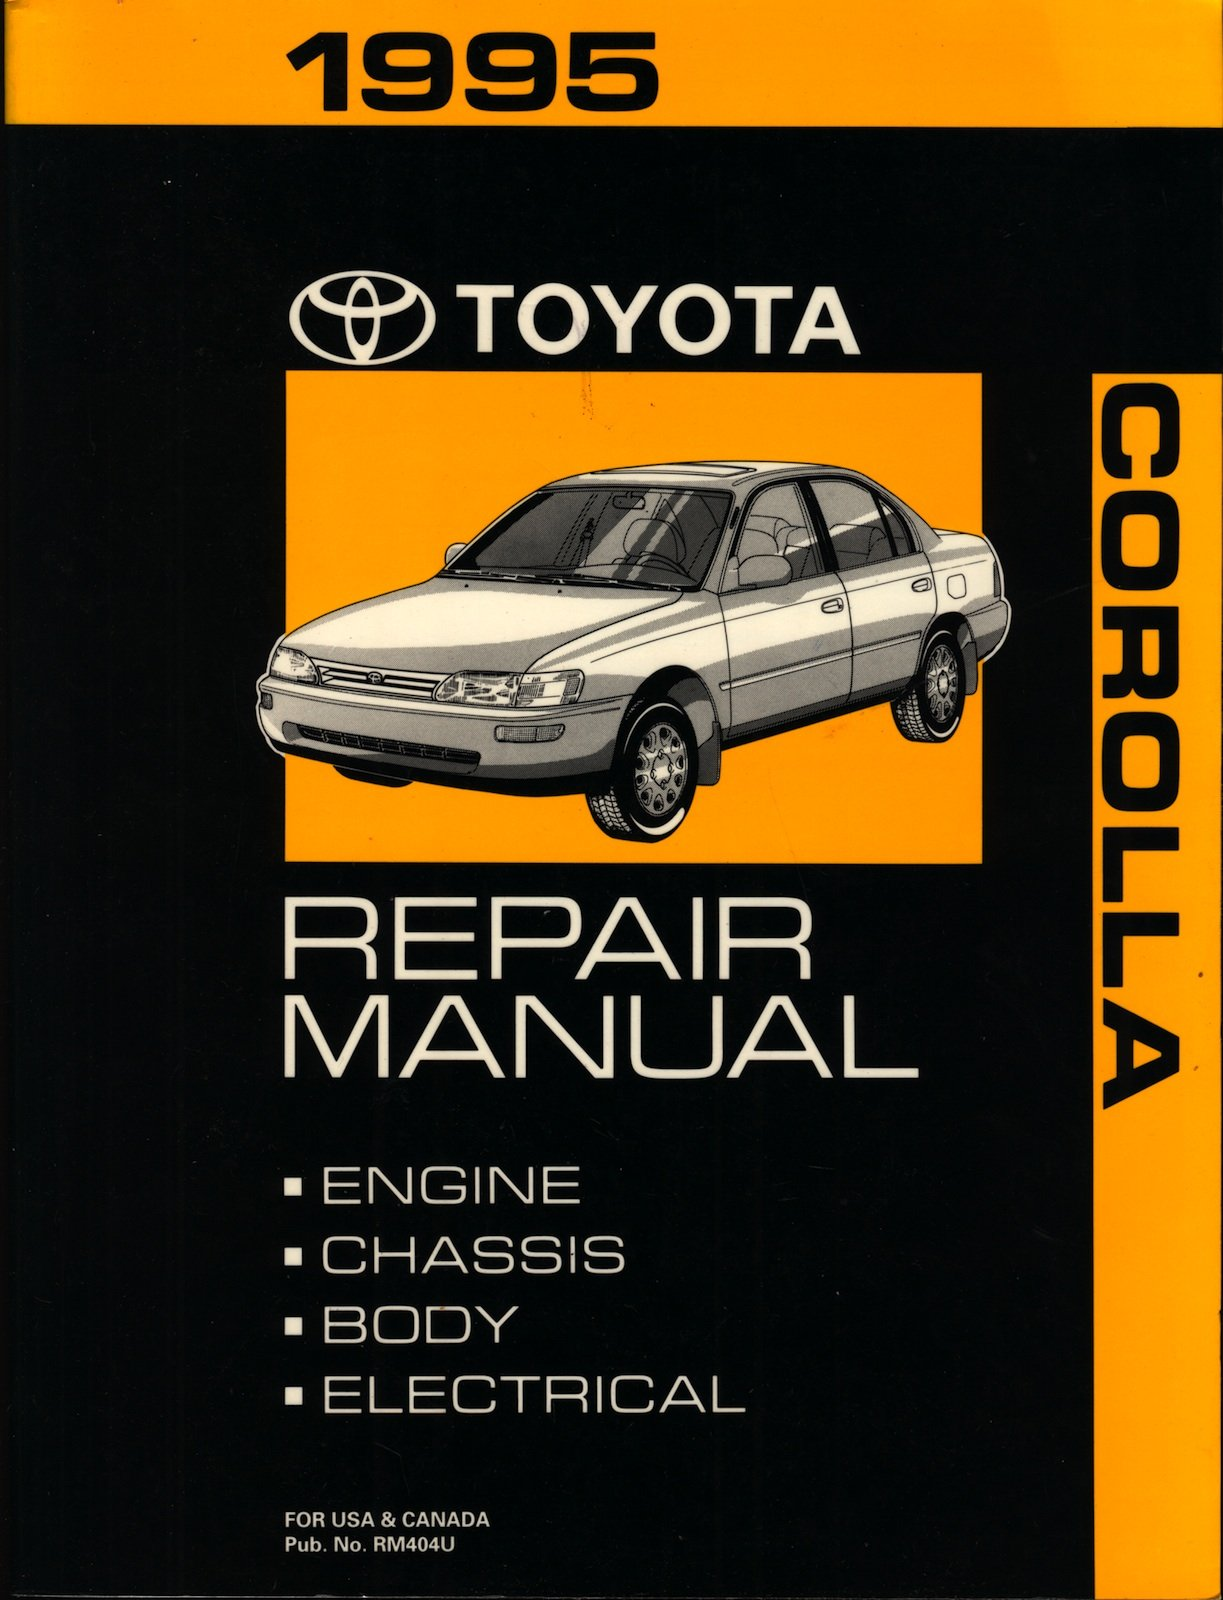 1995 toyota corolla repair manual toyota amazon com books rh amazon com 1994 Toyota Camry 1990 Toyota Camry